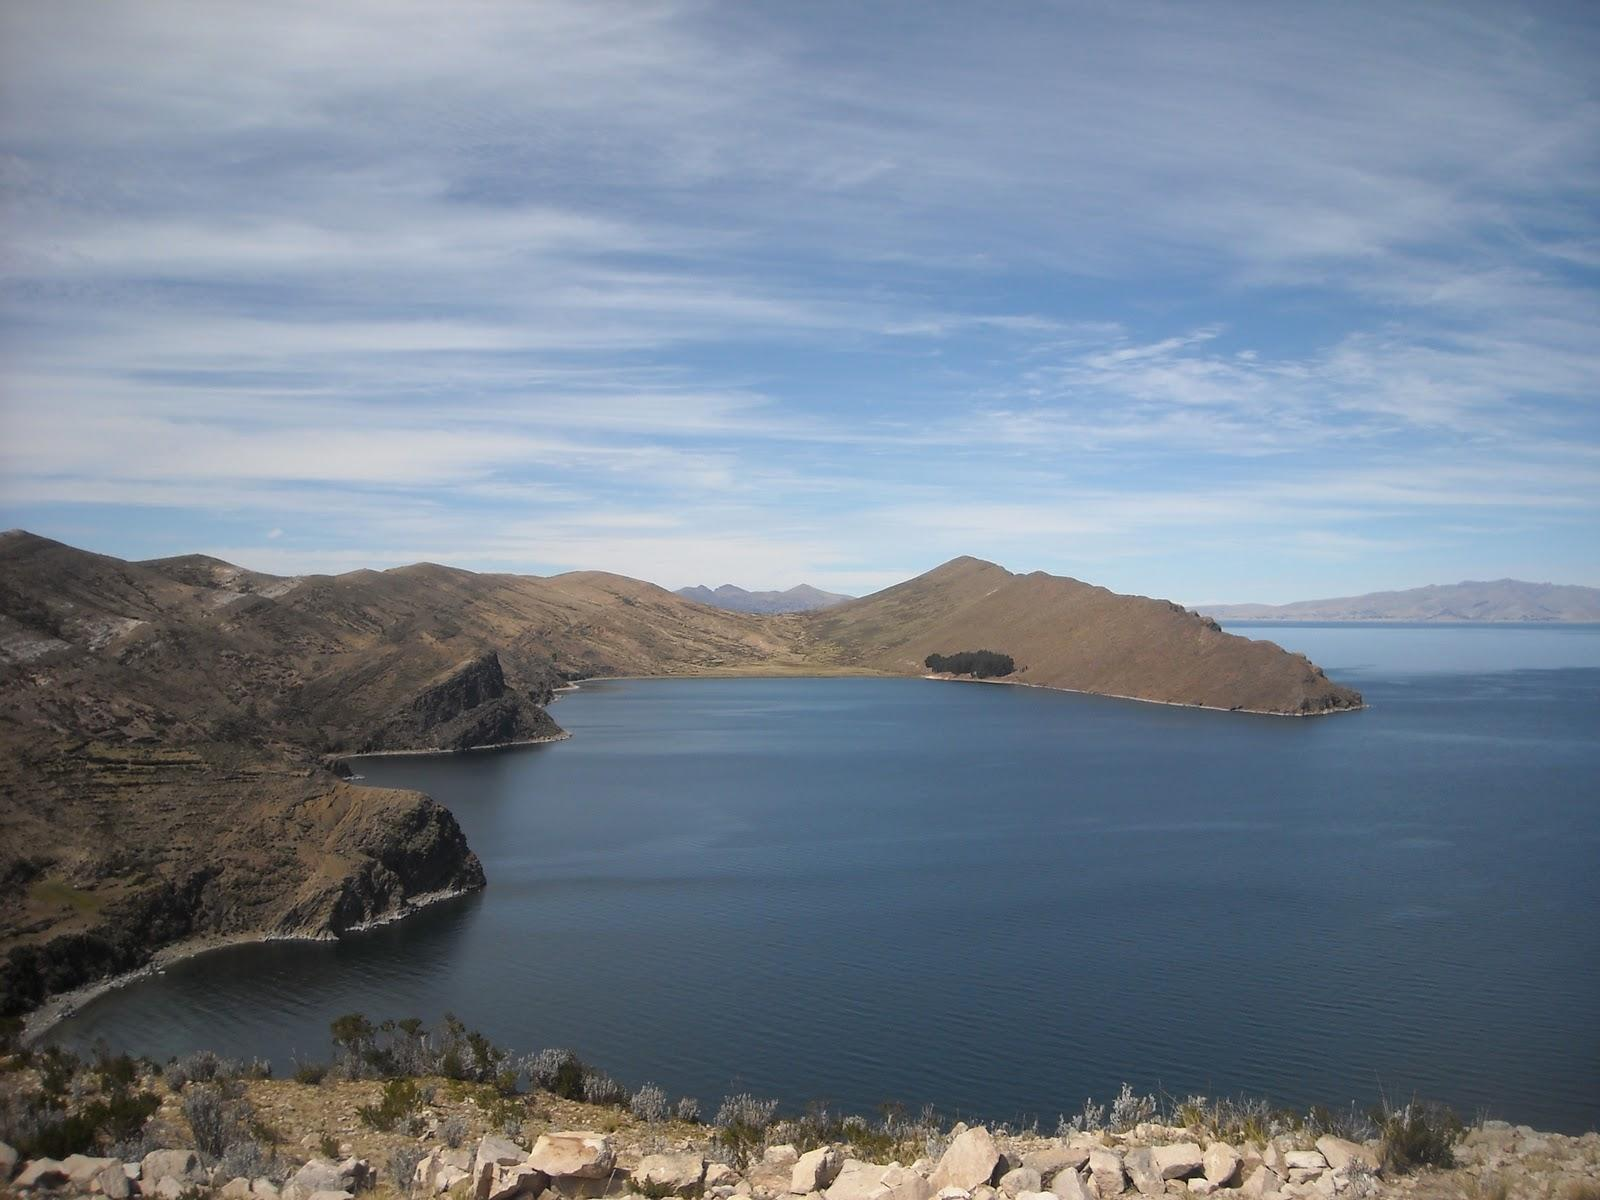 Backpacking Central And South America: Copacabana - Lake Titicaca ...